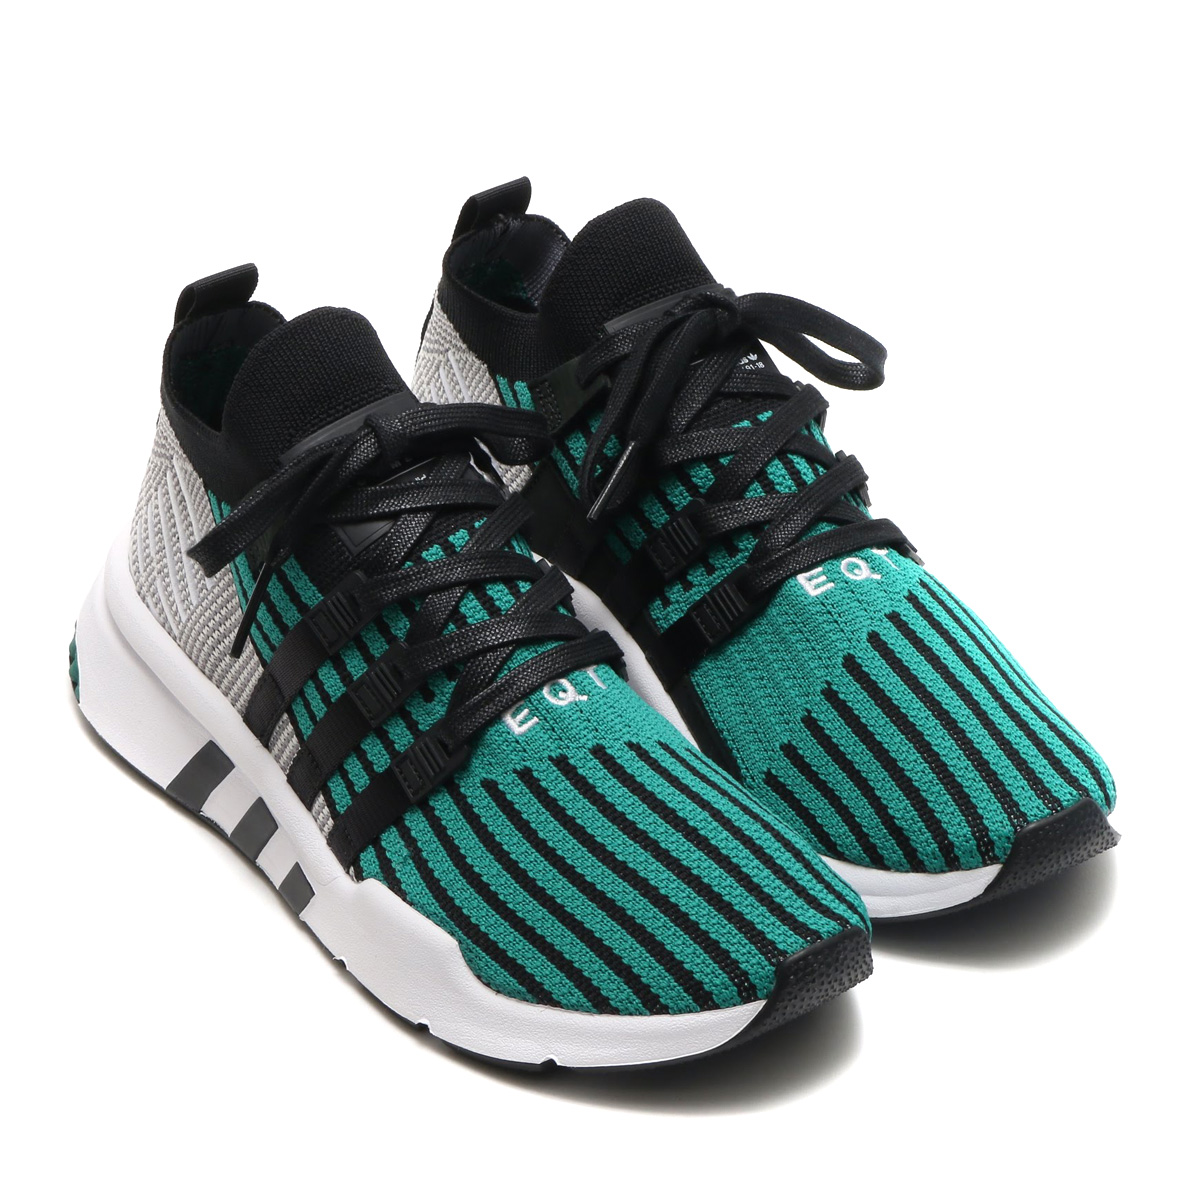 newest a35cc 26246 I treat upper of the comfortable adidas prime knit like socks, and